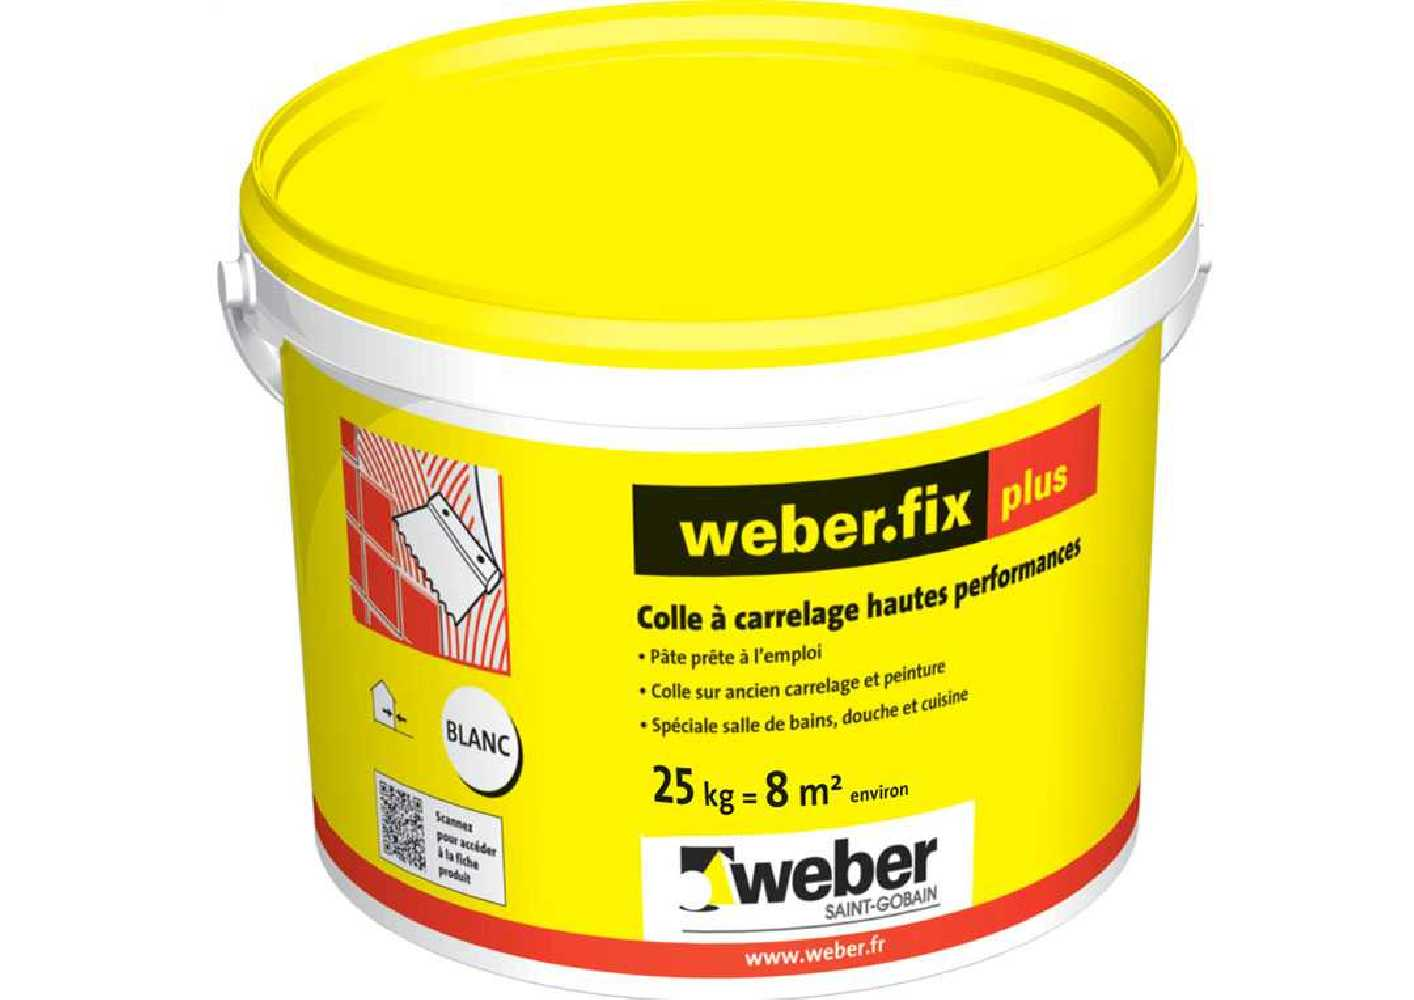 Weber.fix Plus - Seau de 25 Kg